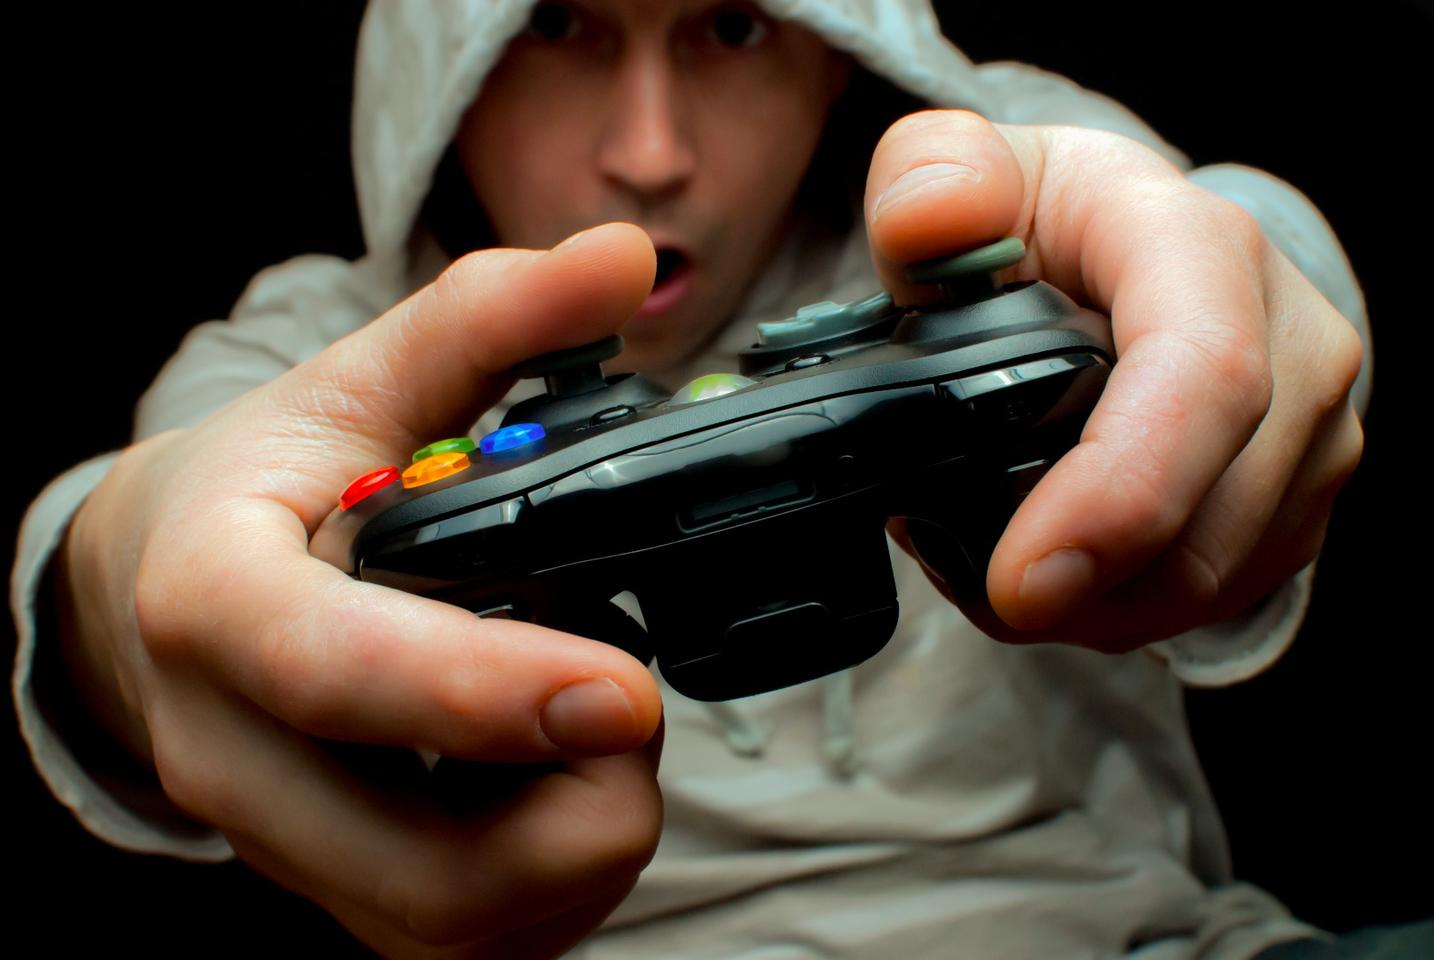 According to a recent study, excessive playing of action games can cause your hippocampus to atrophy